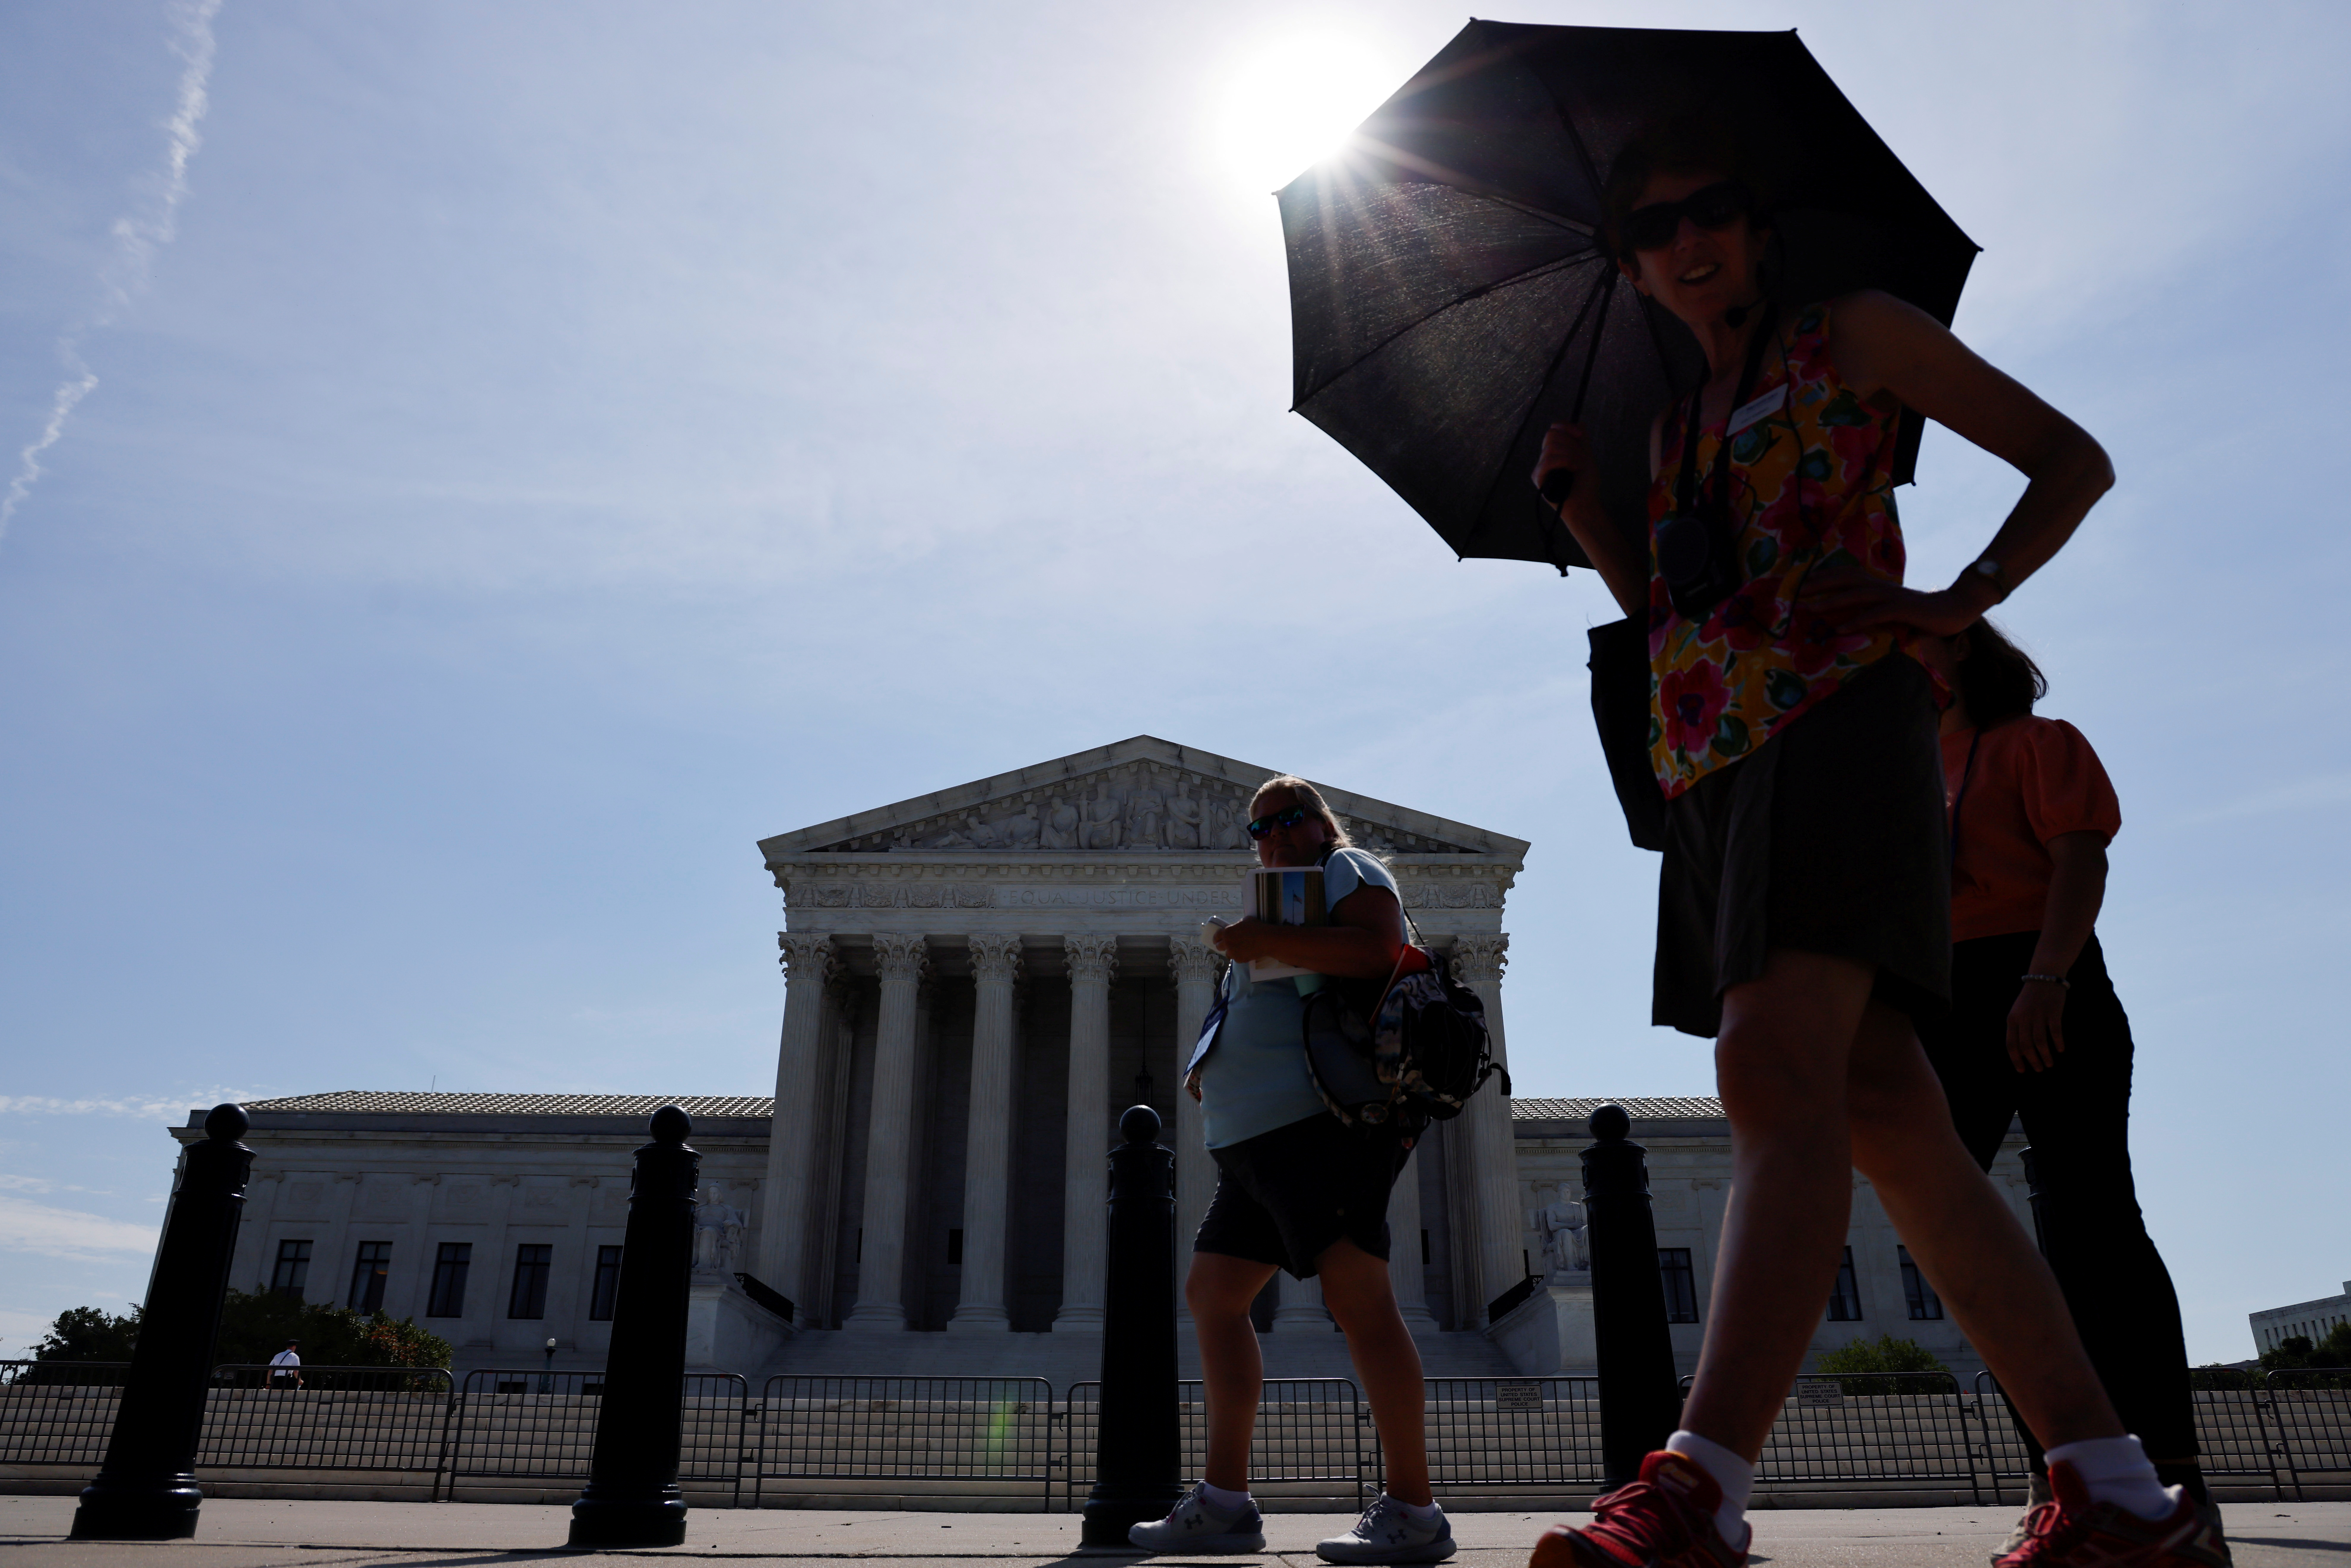 A tour group walks past the front of the U.S. Supreme Court building in Washington, U.S. June 7, 2021. REUTERS/Jonathan Ernst/File Photo